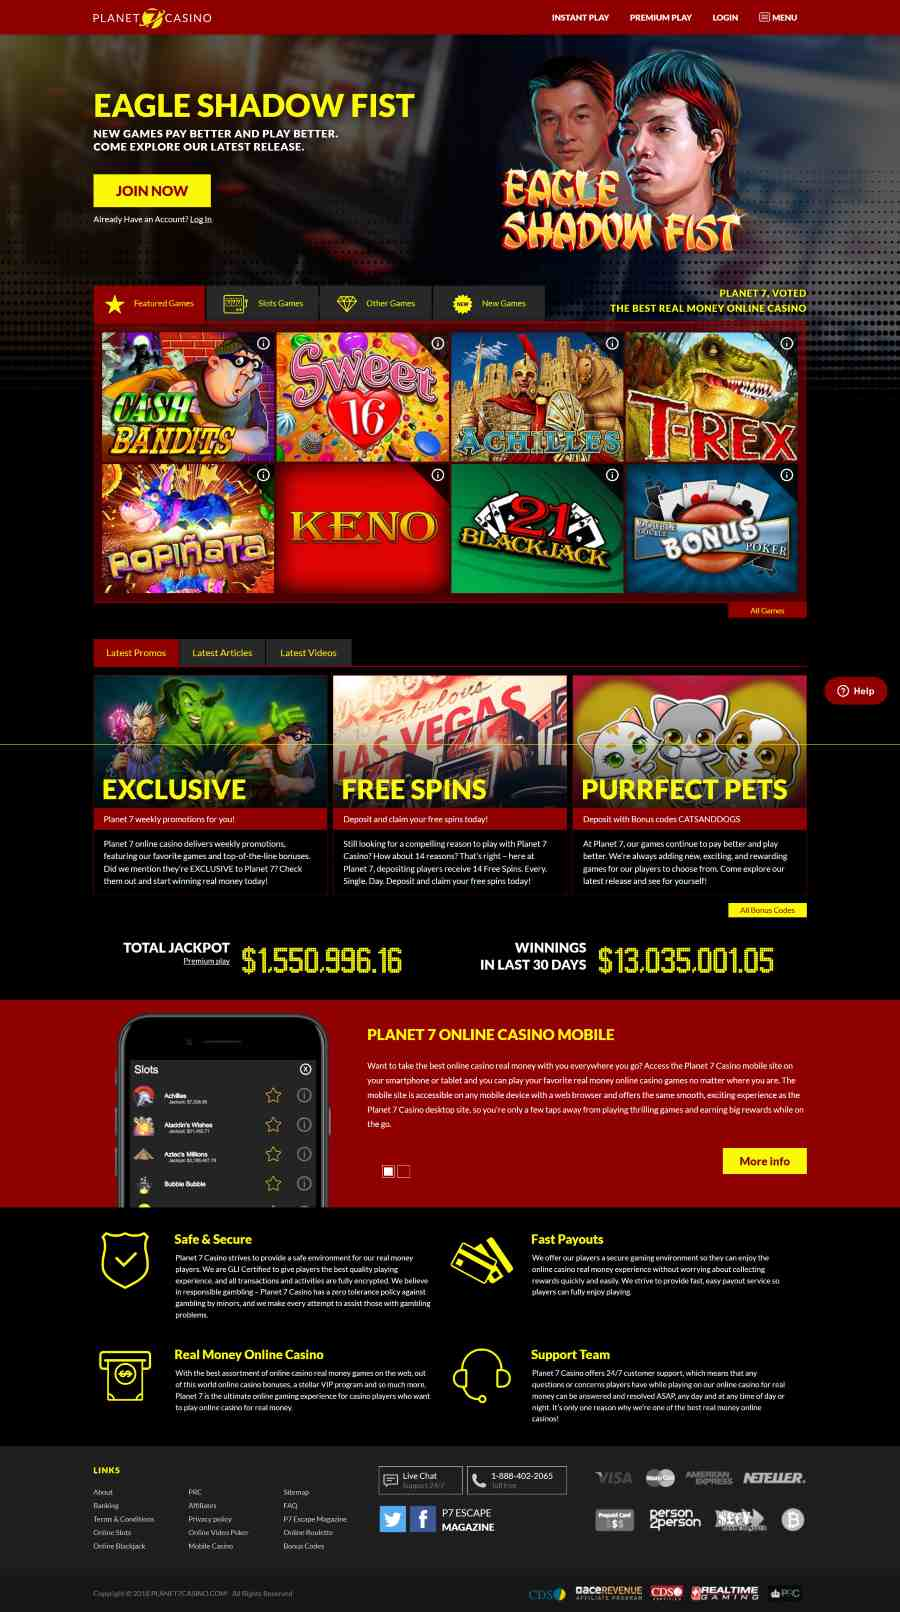 Planet 7 Casino Reviews